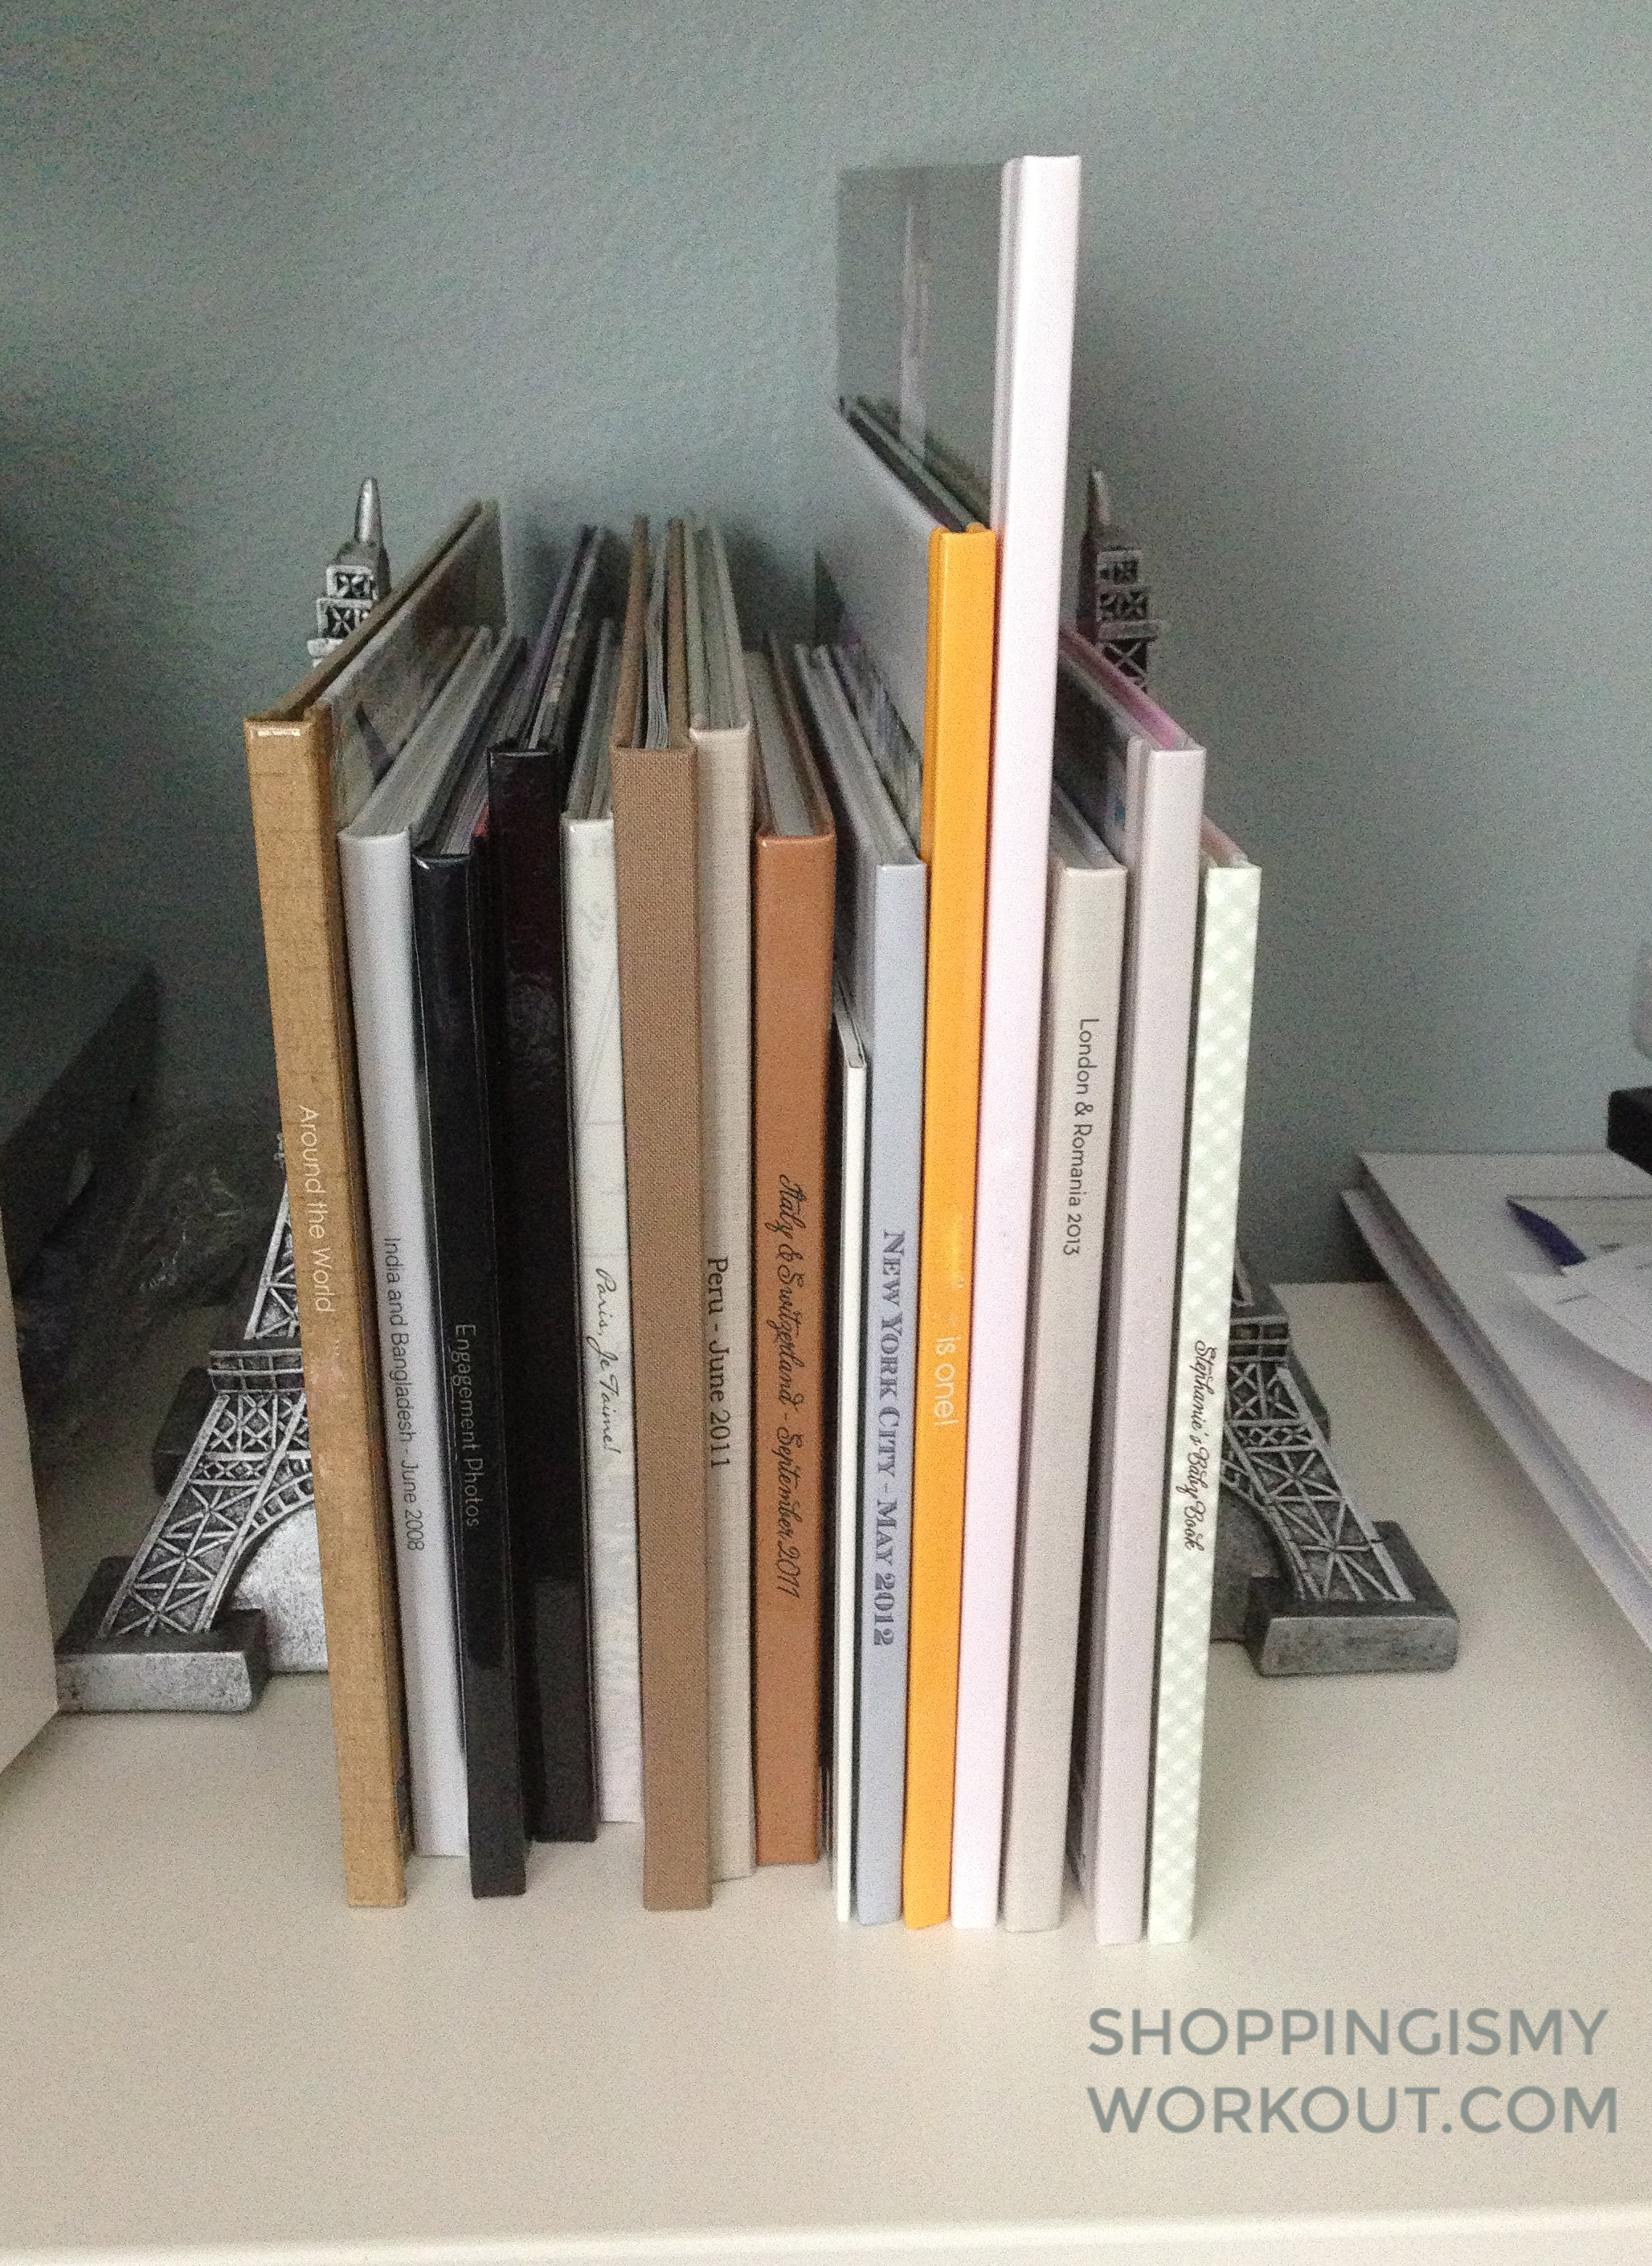 My Photobook Library